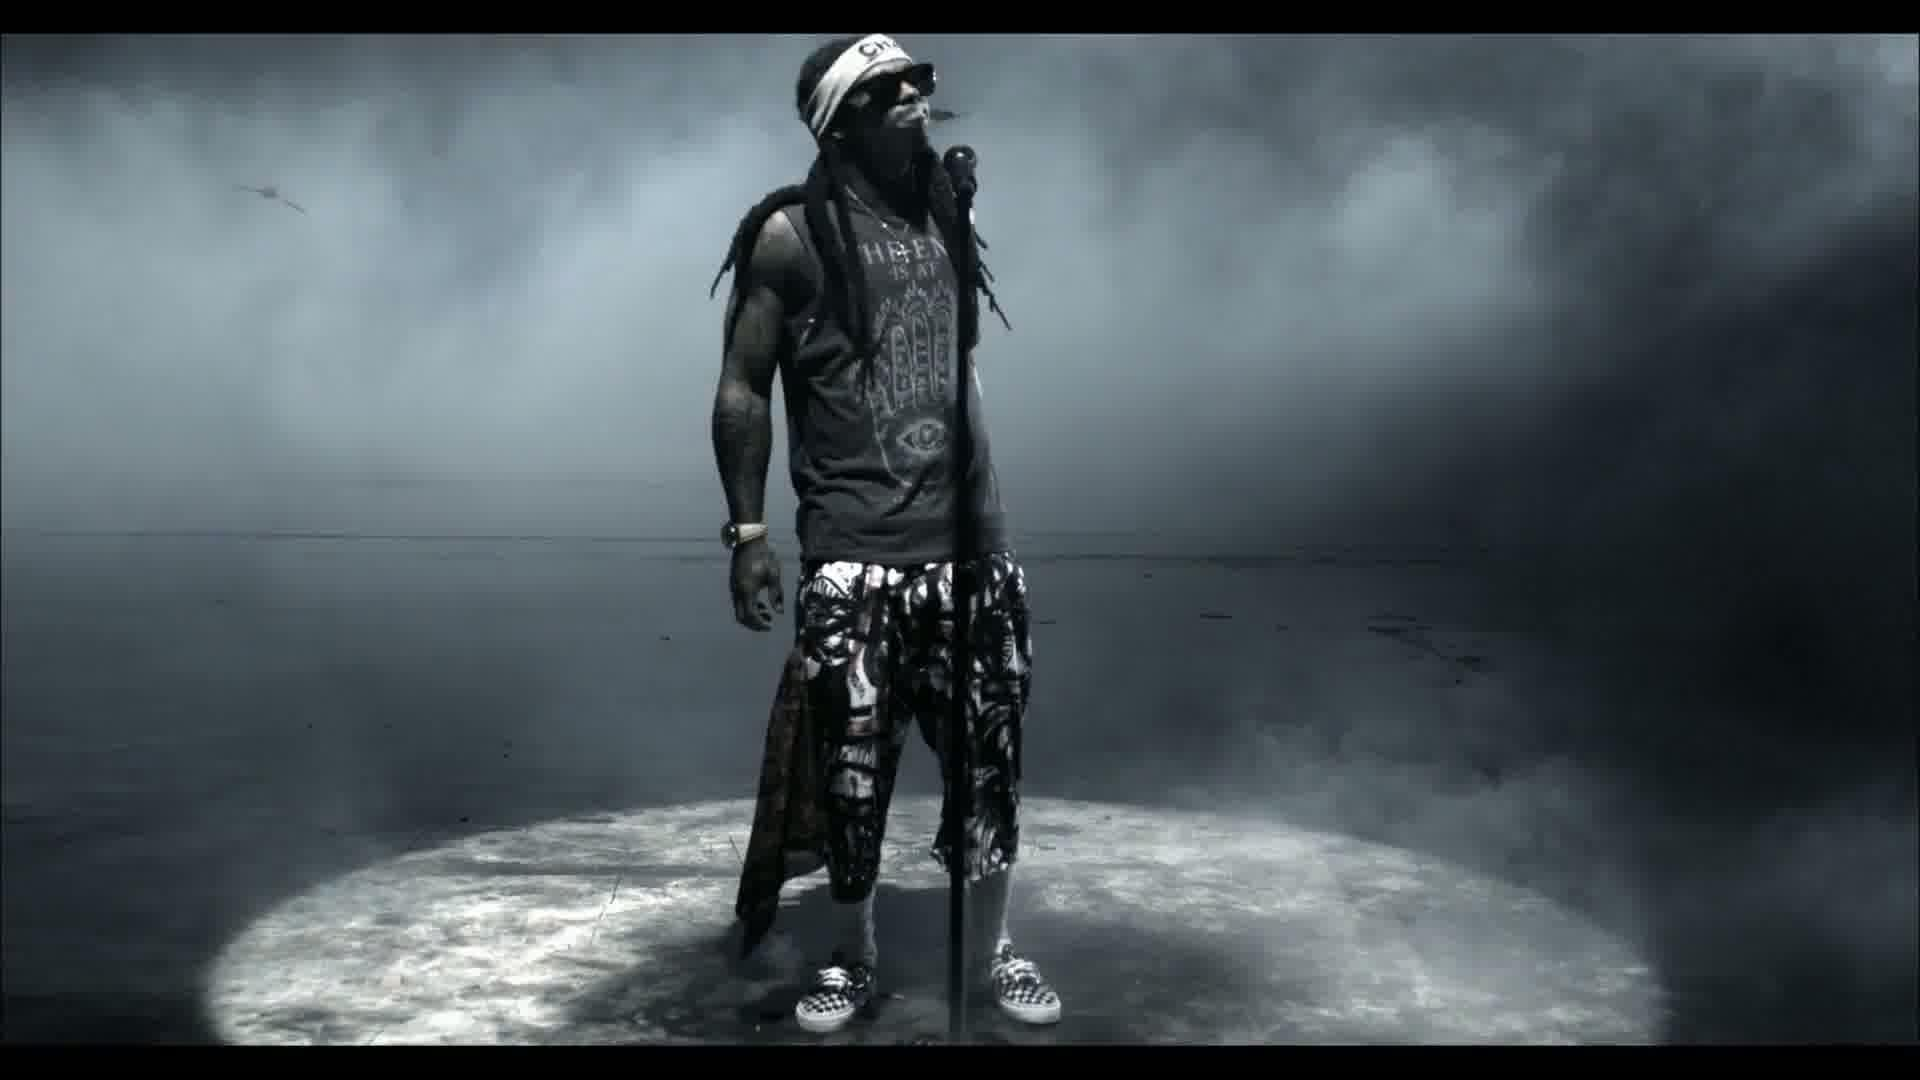 Lil Wayne Wallpaper For Facebook Images amp Pictures   Becuo 1920x1080